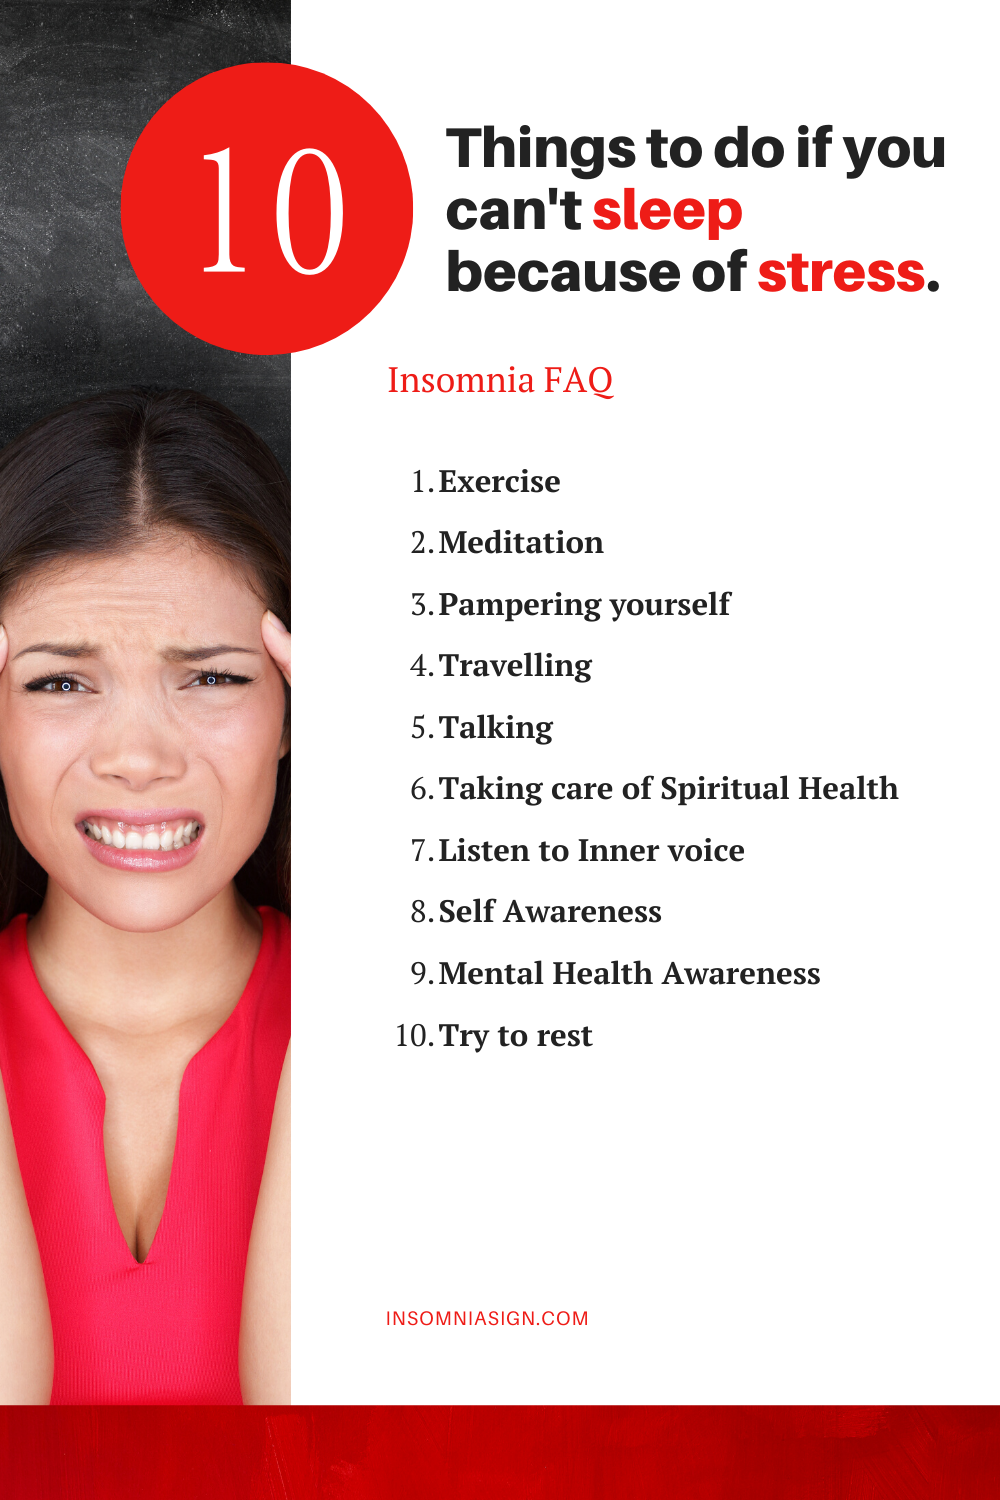 What to do if you can't sleep because of stress?